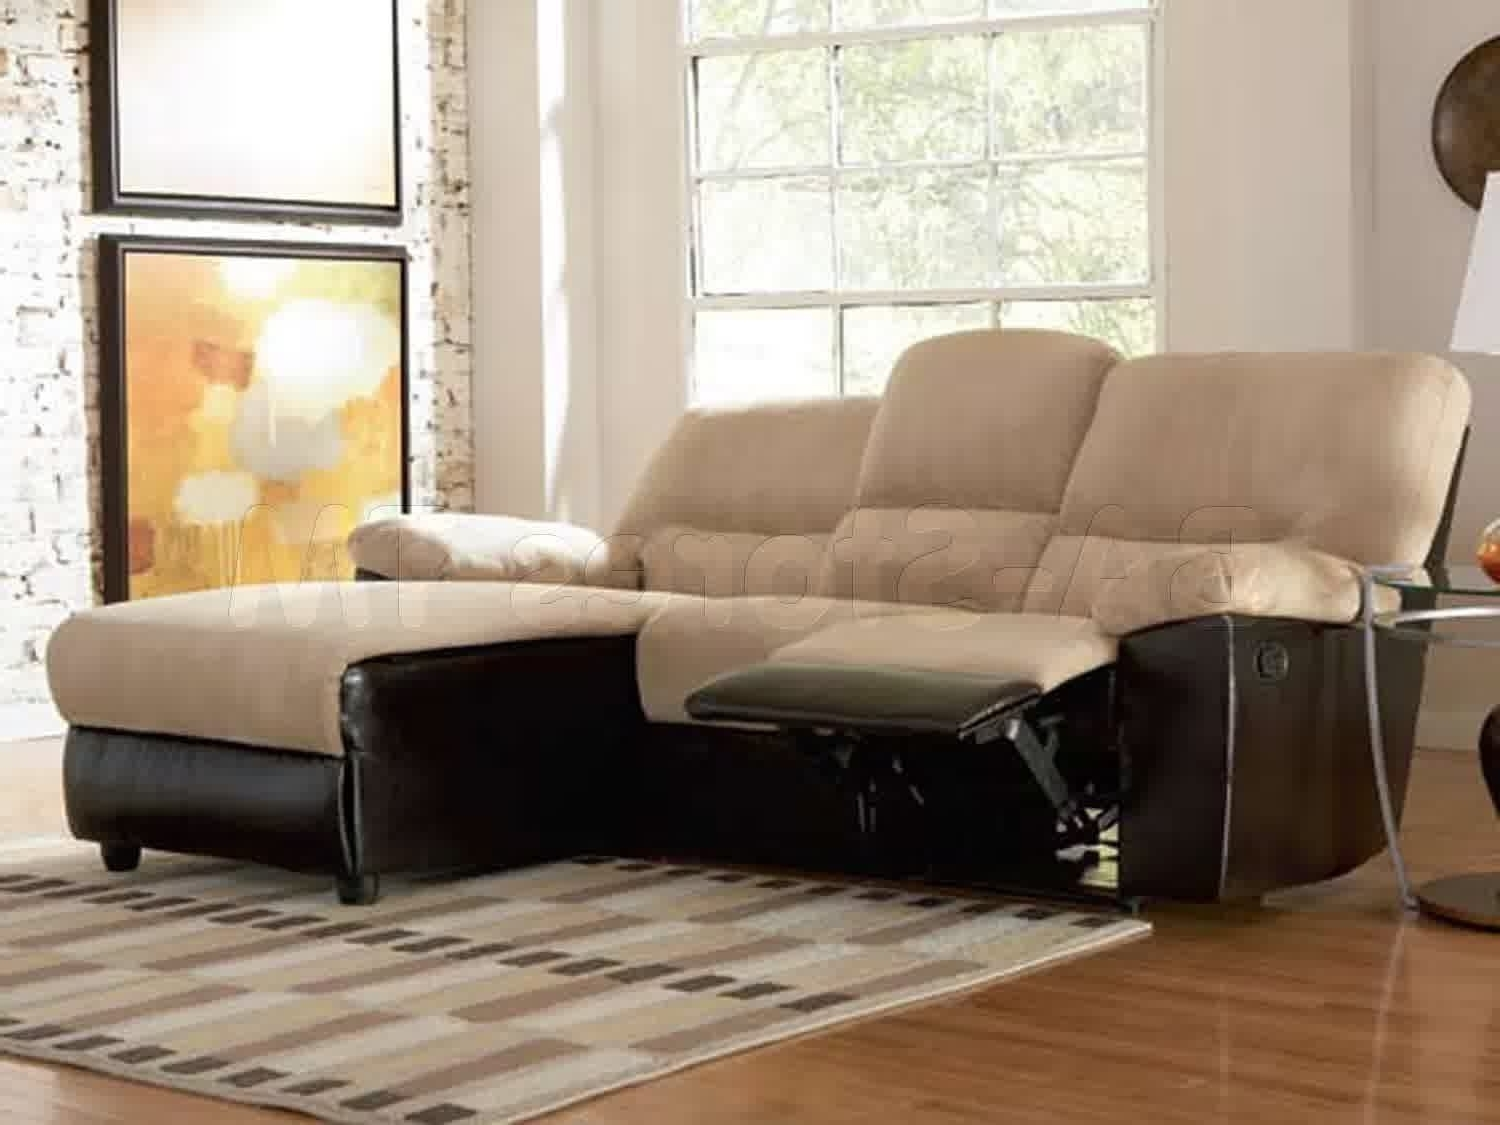 Popular Apartment Sectional Sofas With Chaise With Regard To Top Grain Leather Reclining Sectional Cheap Sectional Sofas (View 11 of 15)